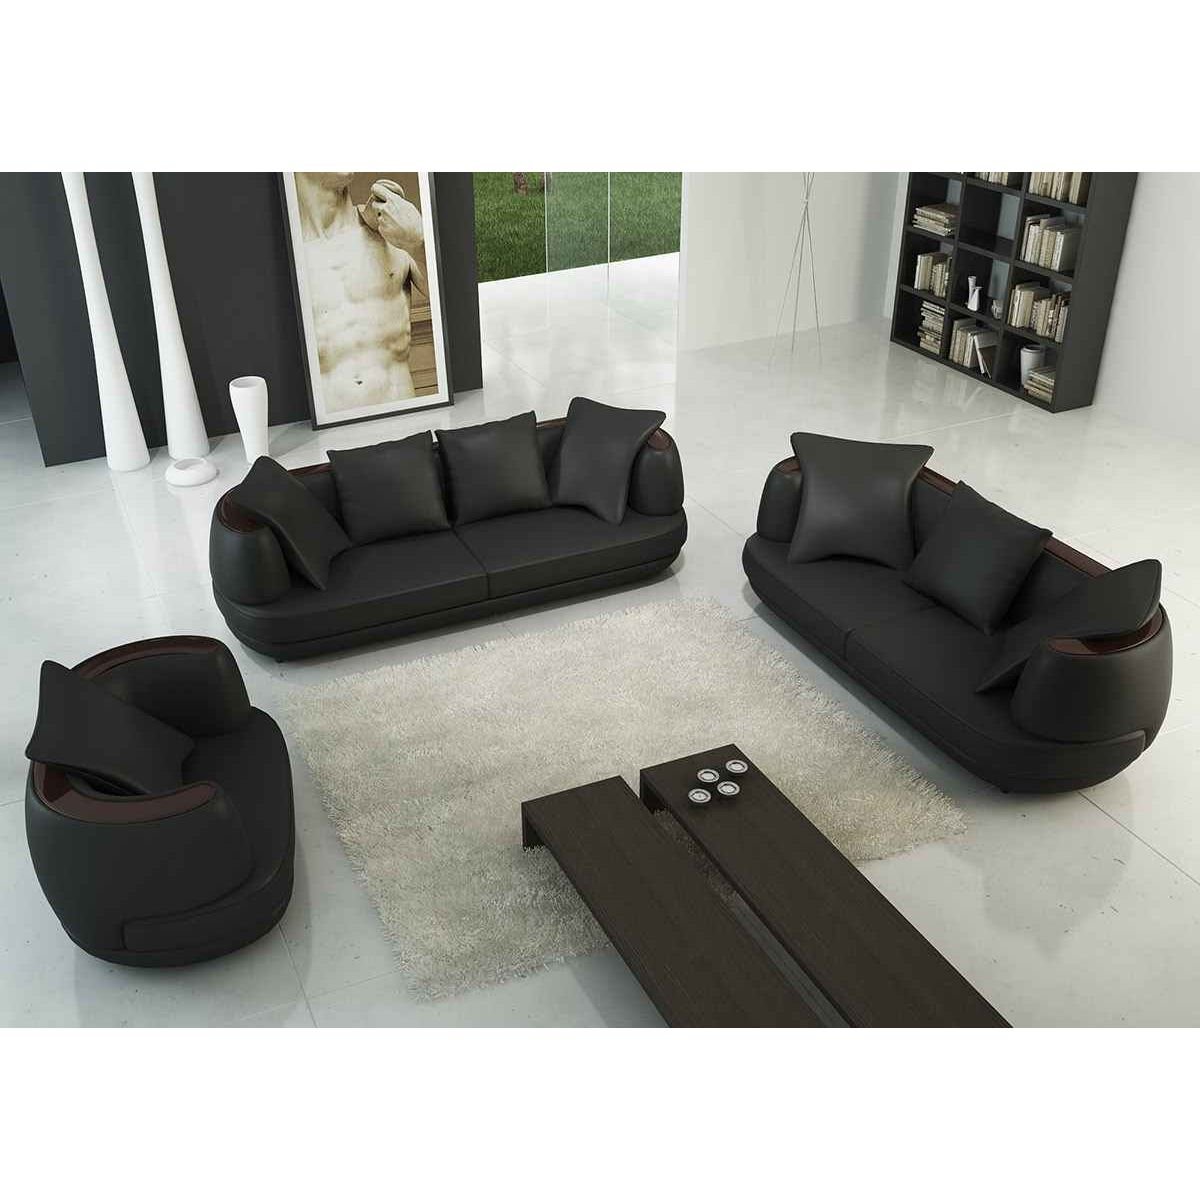 Deco in paris ensemble canape 3 2 1 places noir en cuir ryga ryga 3 2 1 noir - Canape cuir noir 3 places ...